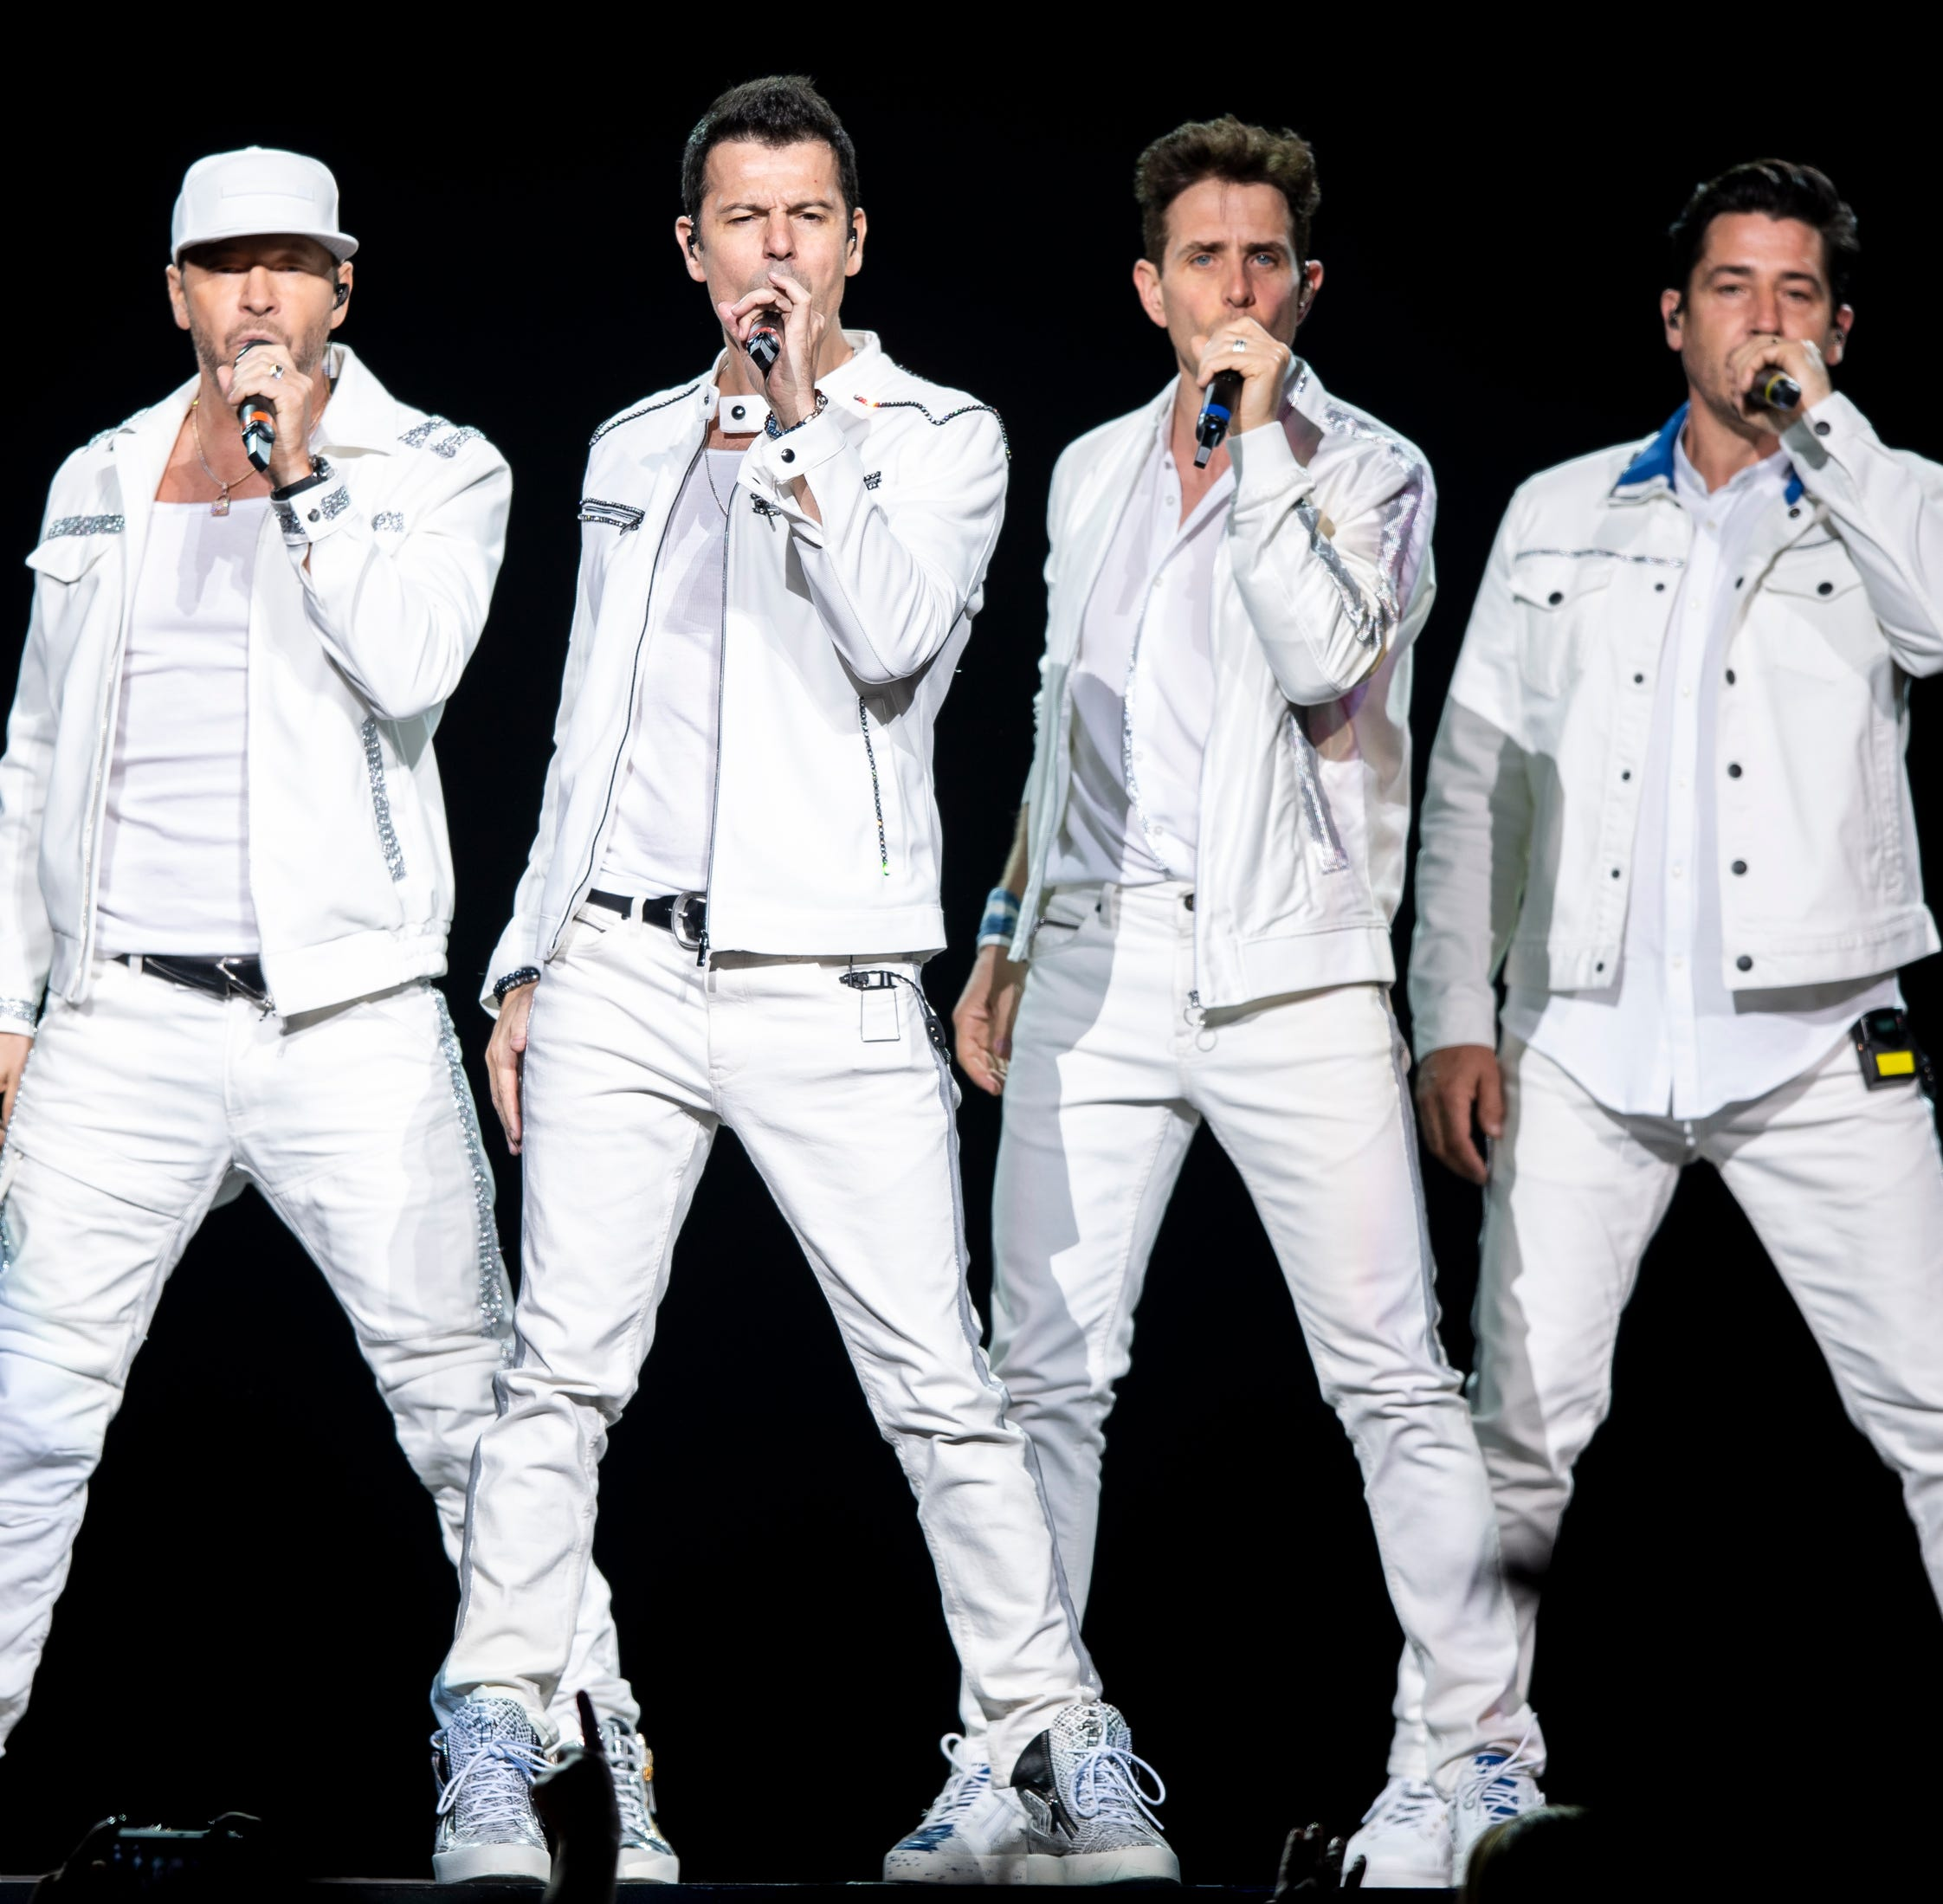 New Kids On The Block brought an '80s mixtape to life in Nashville